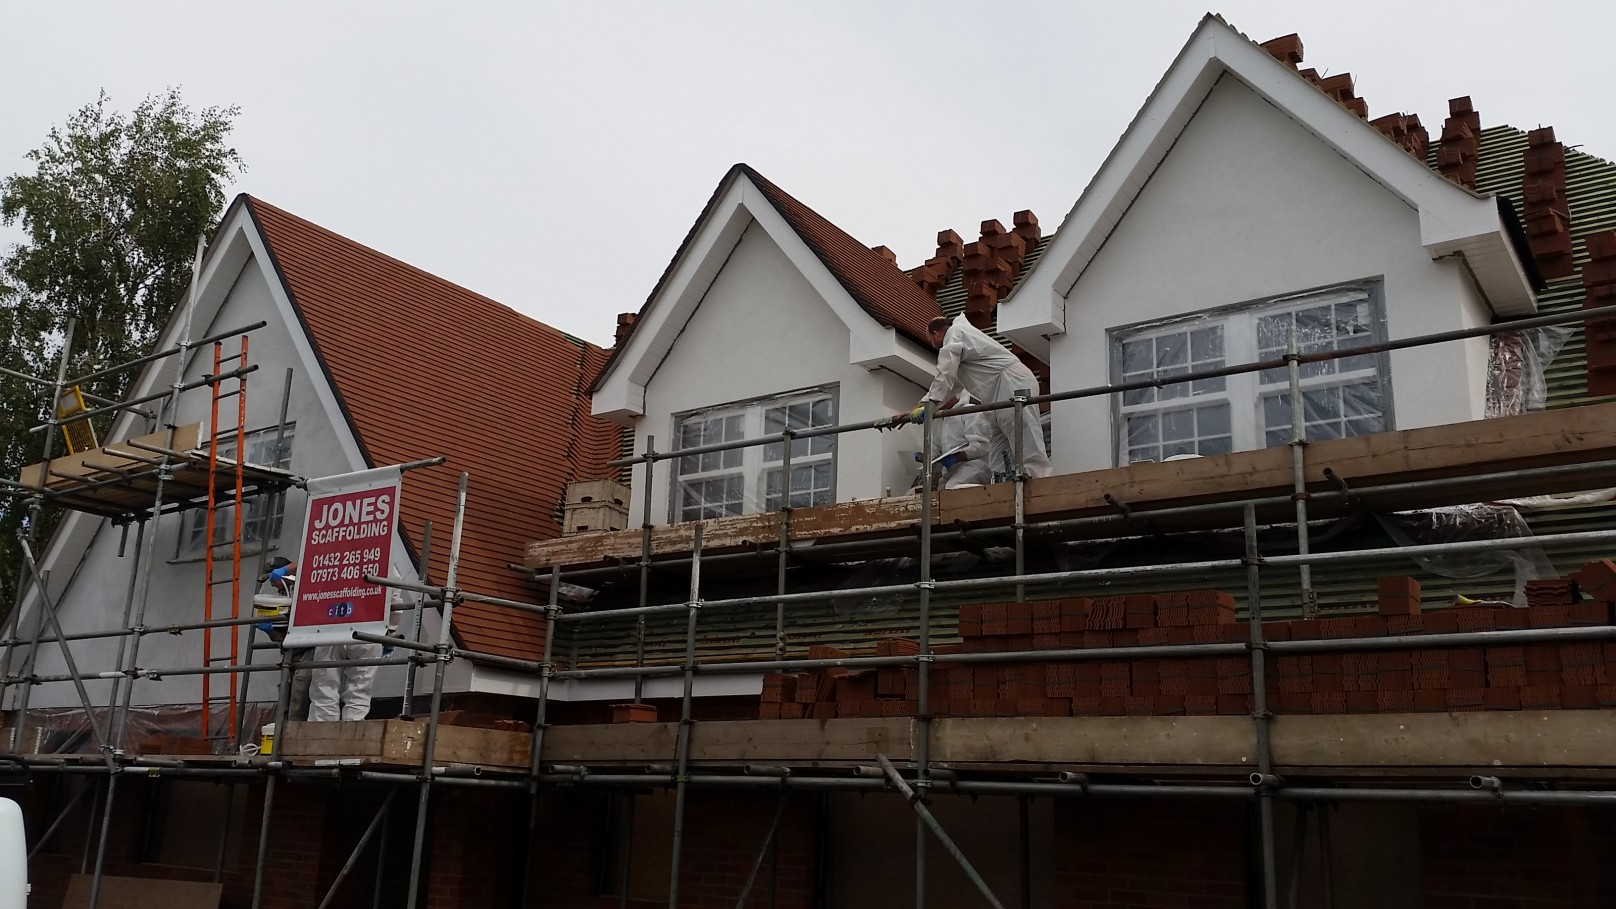 G N P Construction Ltd - Building Contractors in Kingstone, Hereford